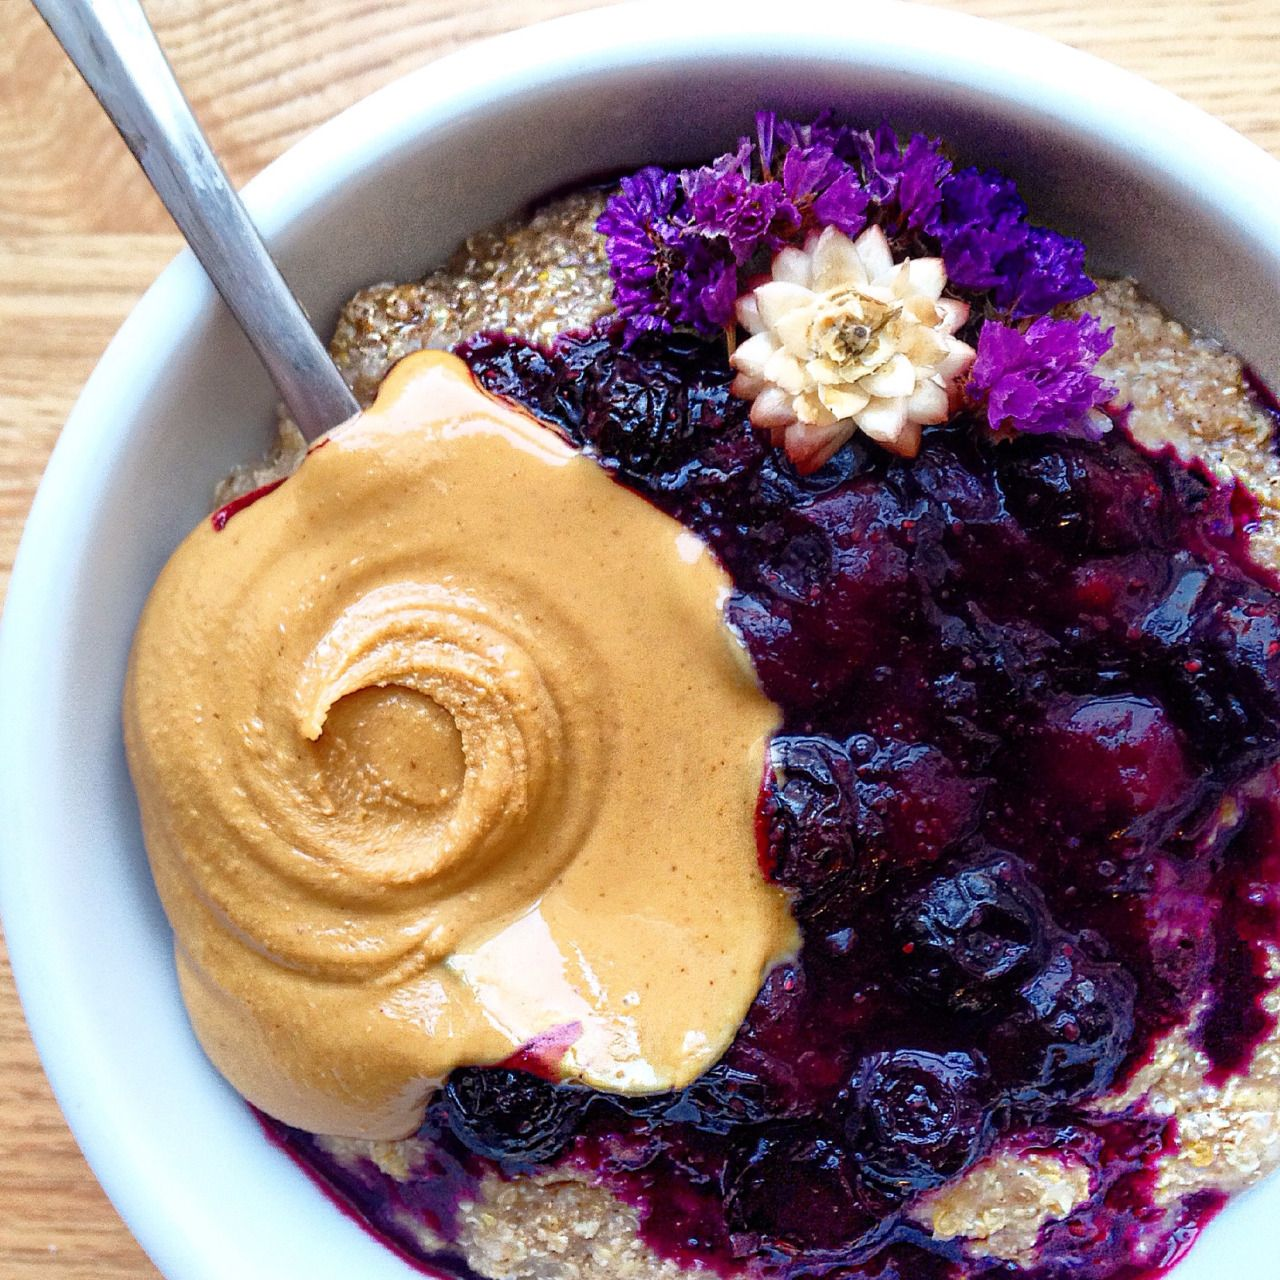 Hot quinoa cereal with melty cinnamon blueberry sauce pb hot quinoa cereal with melty cinnamon blueberry sauce pb flowersandfitness ccuart Choice Image